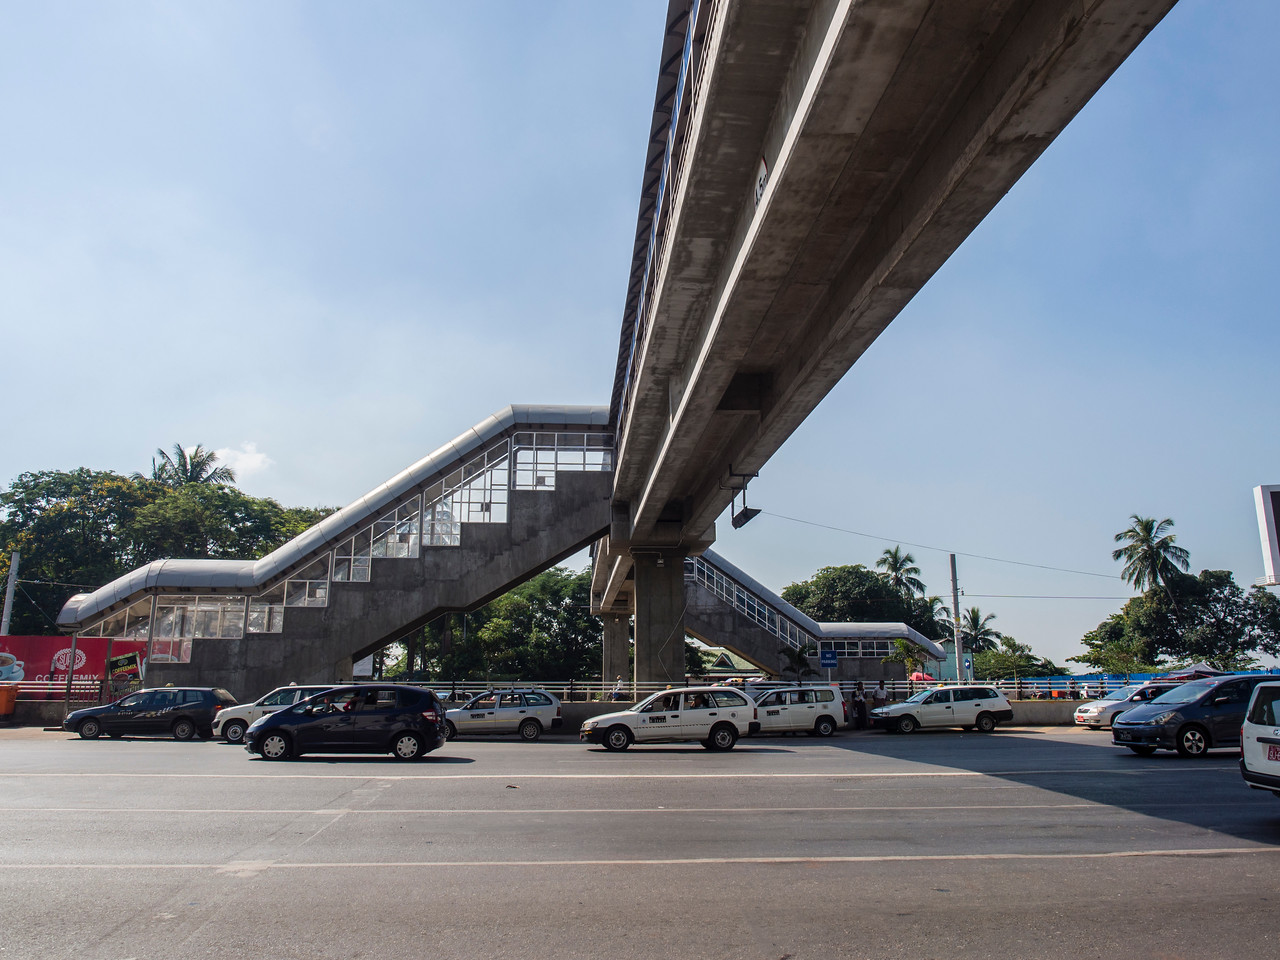 New pedestrian overpass crossing Strand Road to the waterfront